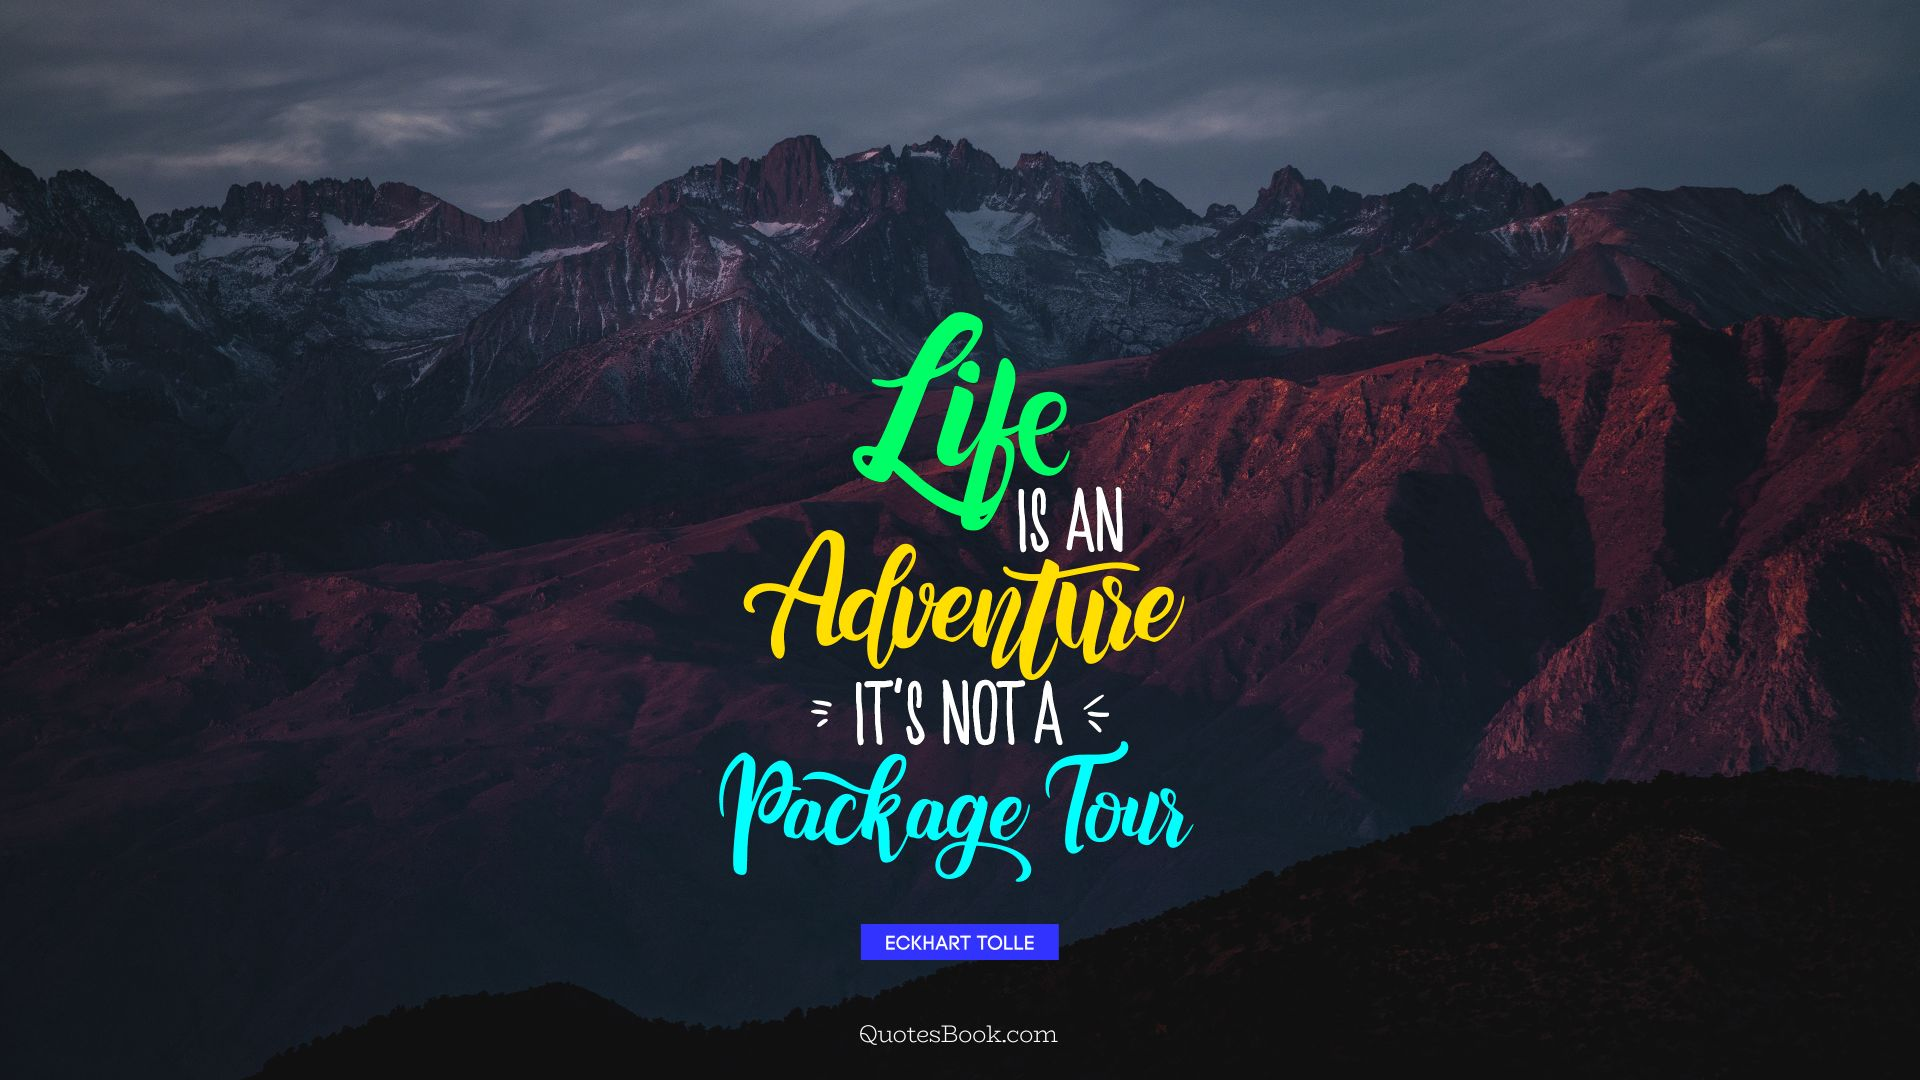 Life is an adventure, it's not a package tour. - Quote by Eckhart Tolle